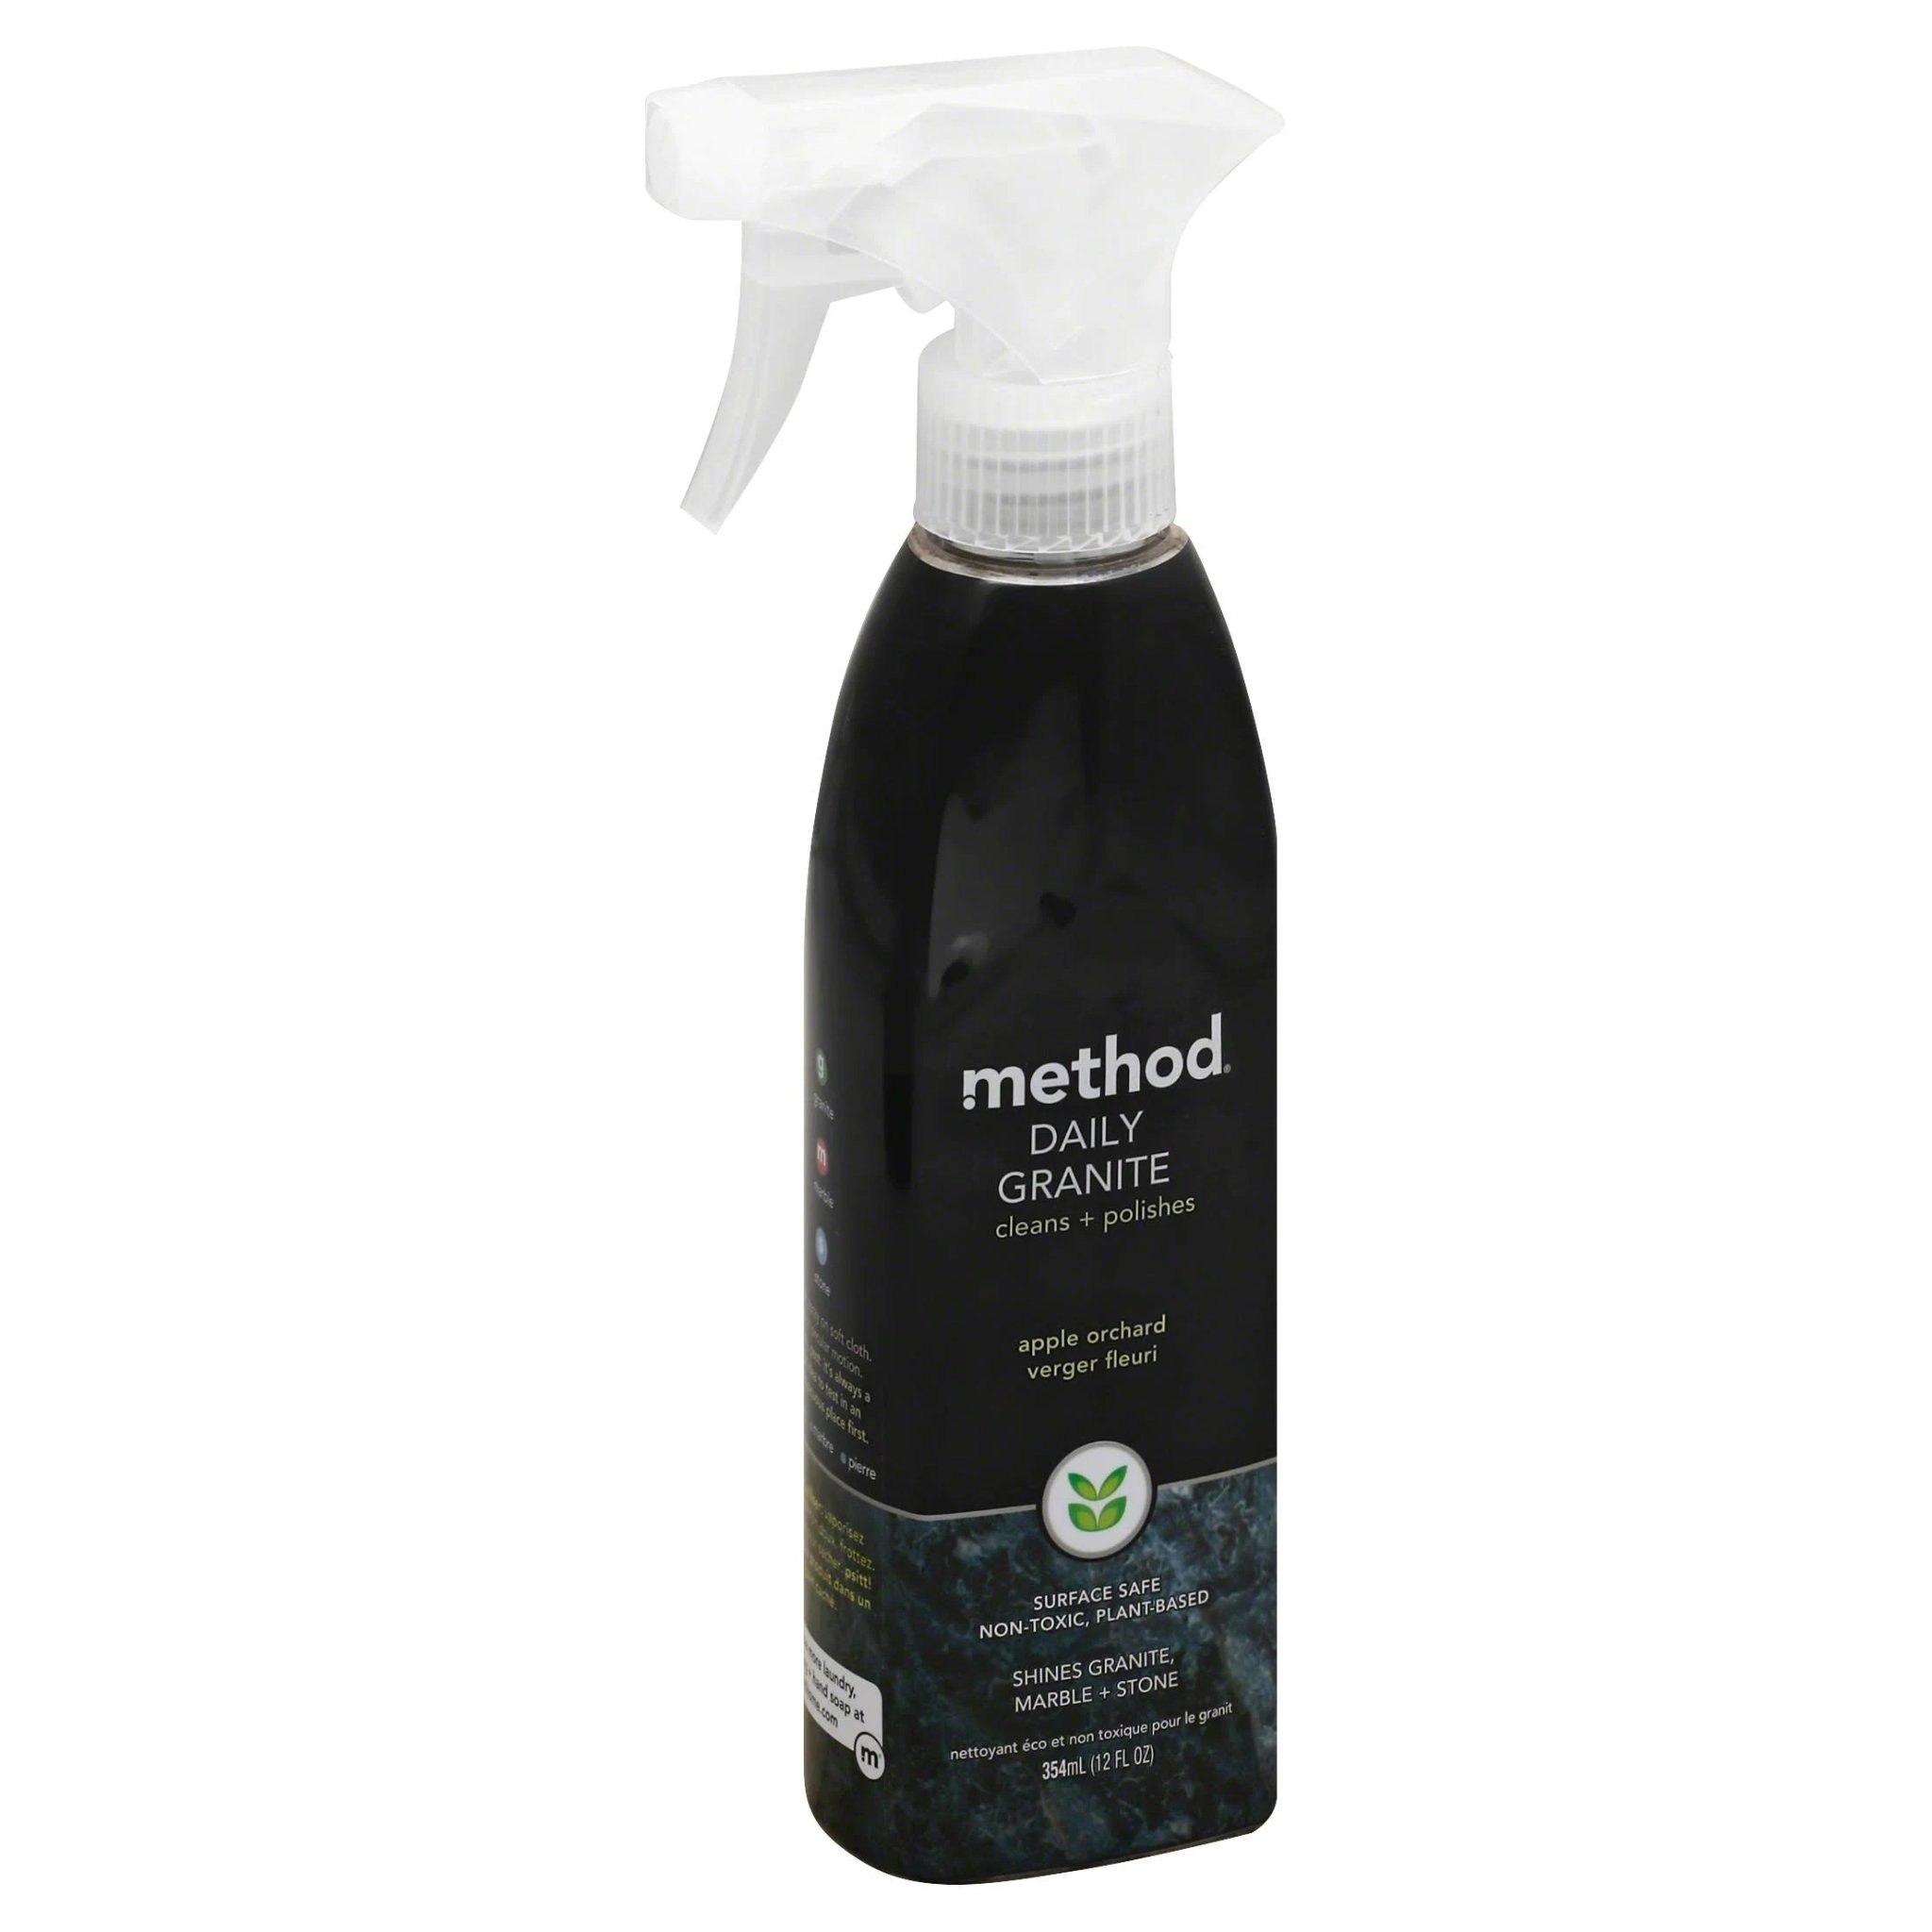 Method Brand Daily Granite Cleaner